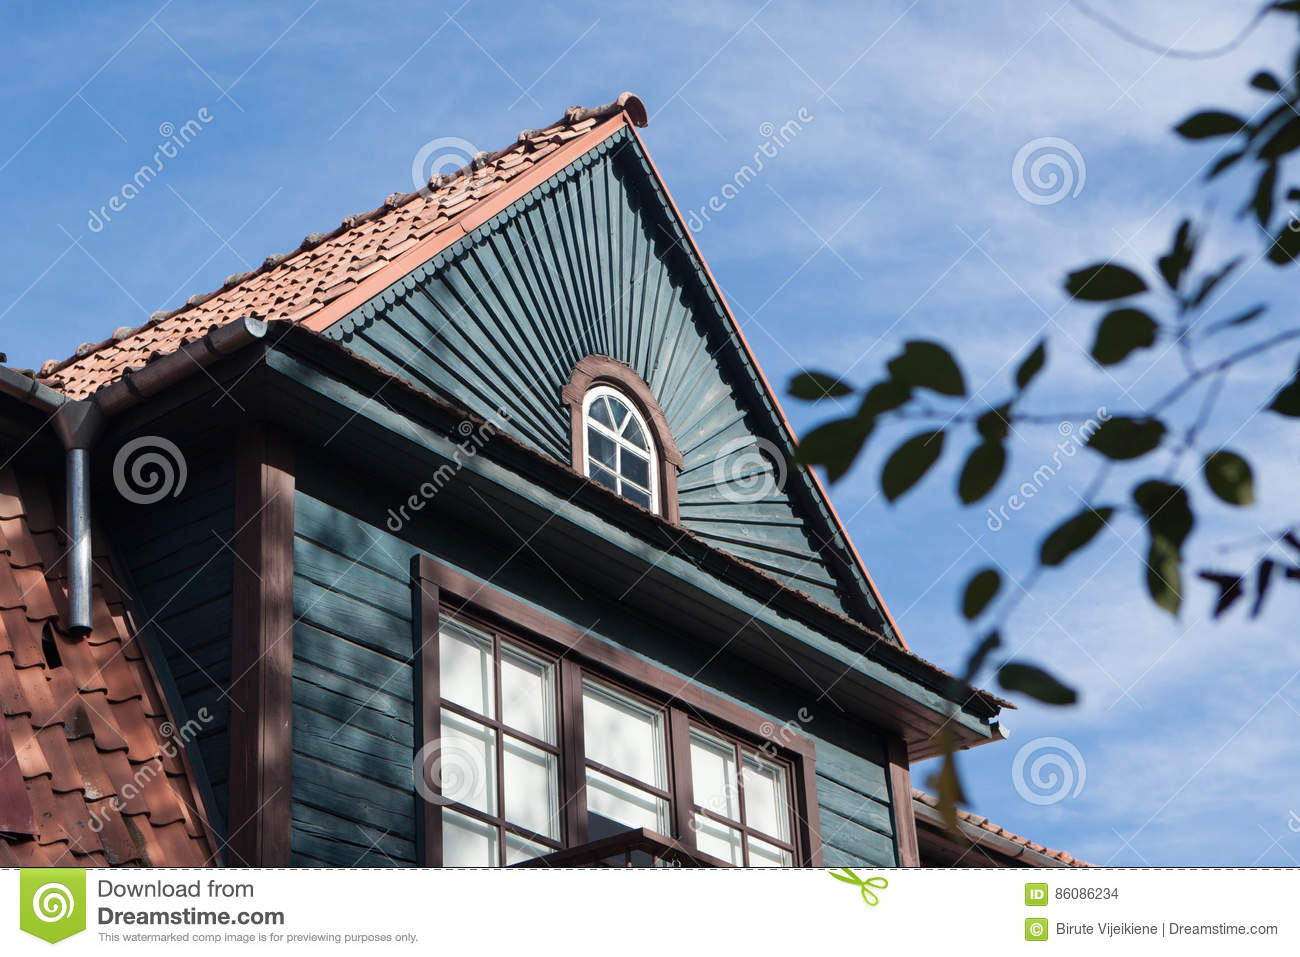 Nice detail of some old wooden house in Zverynas, Vilnius, Lithuania